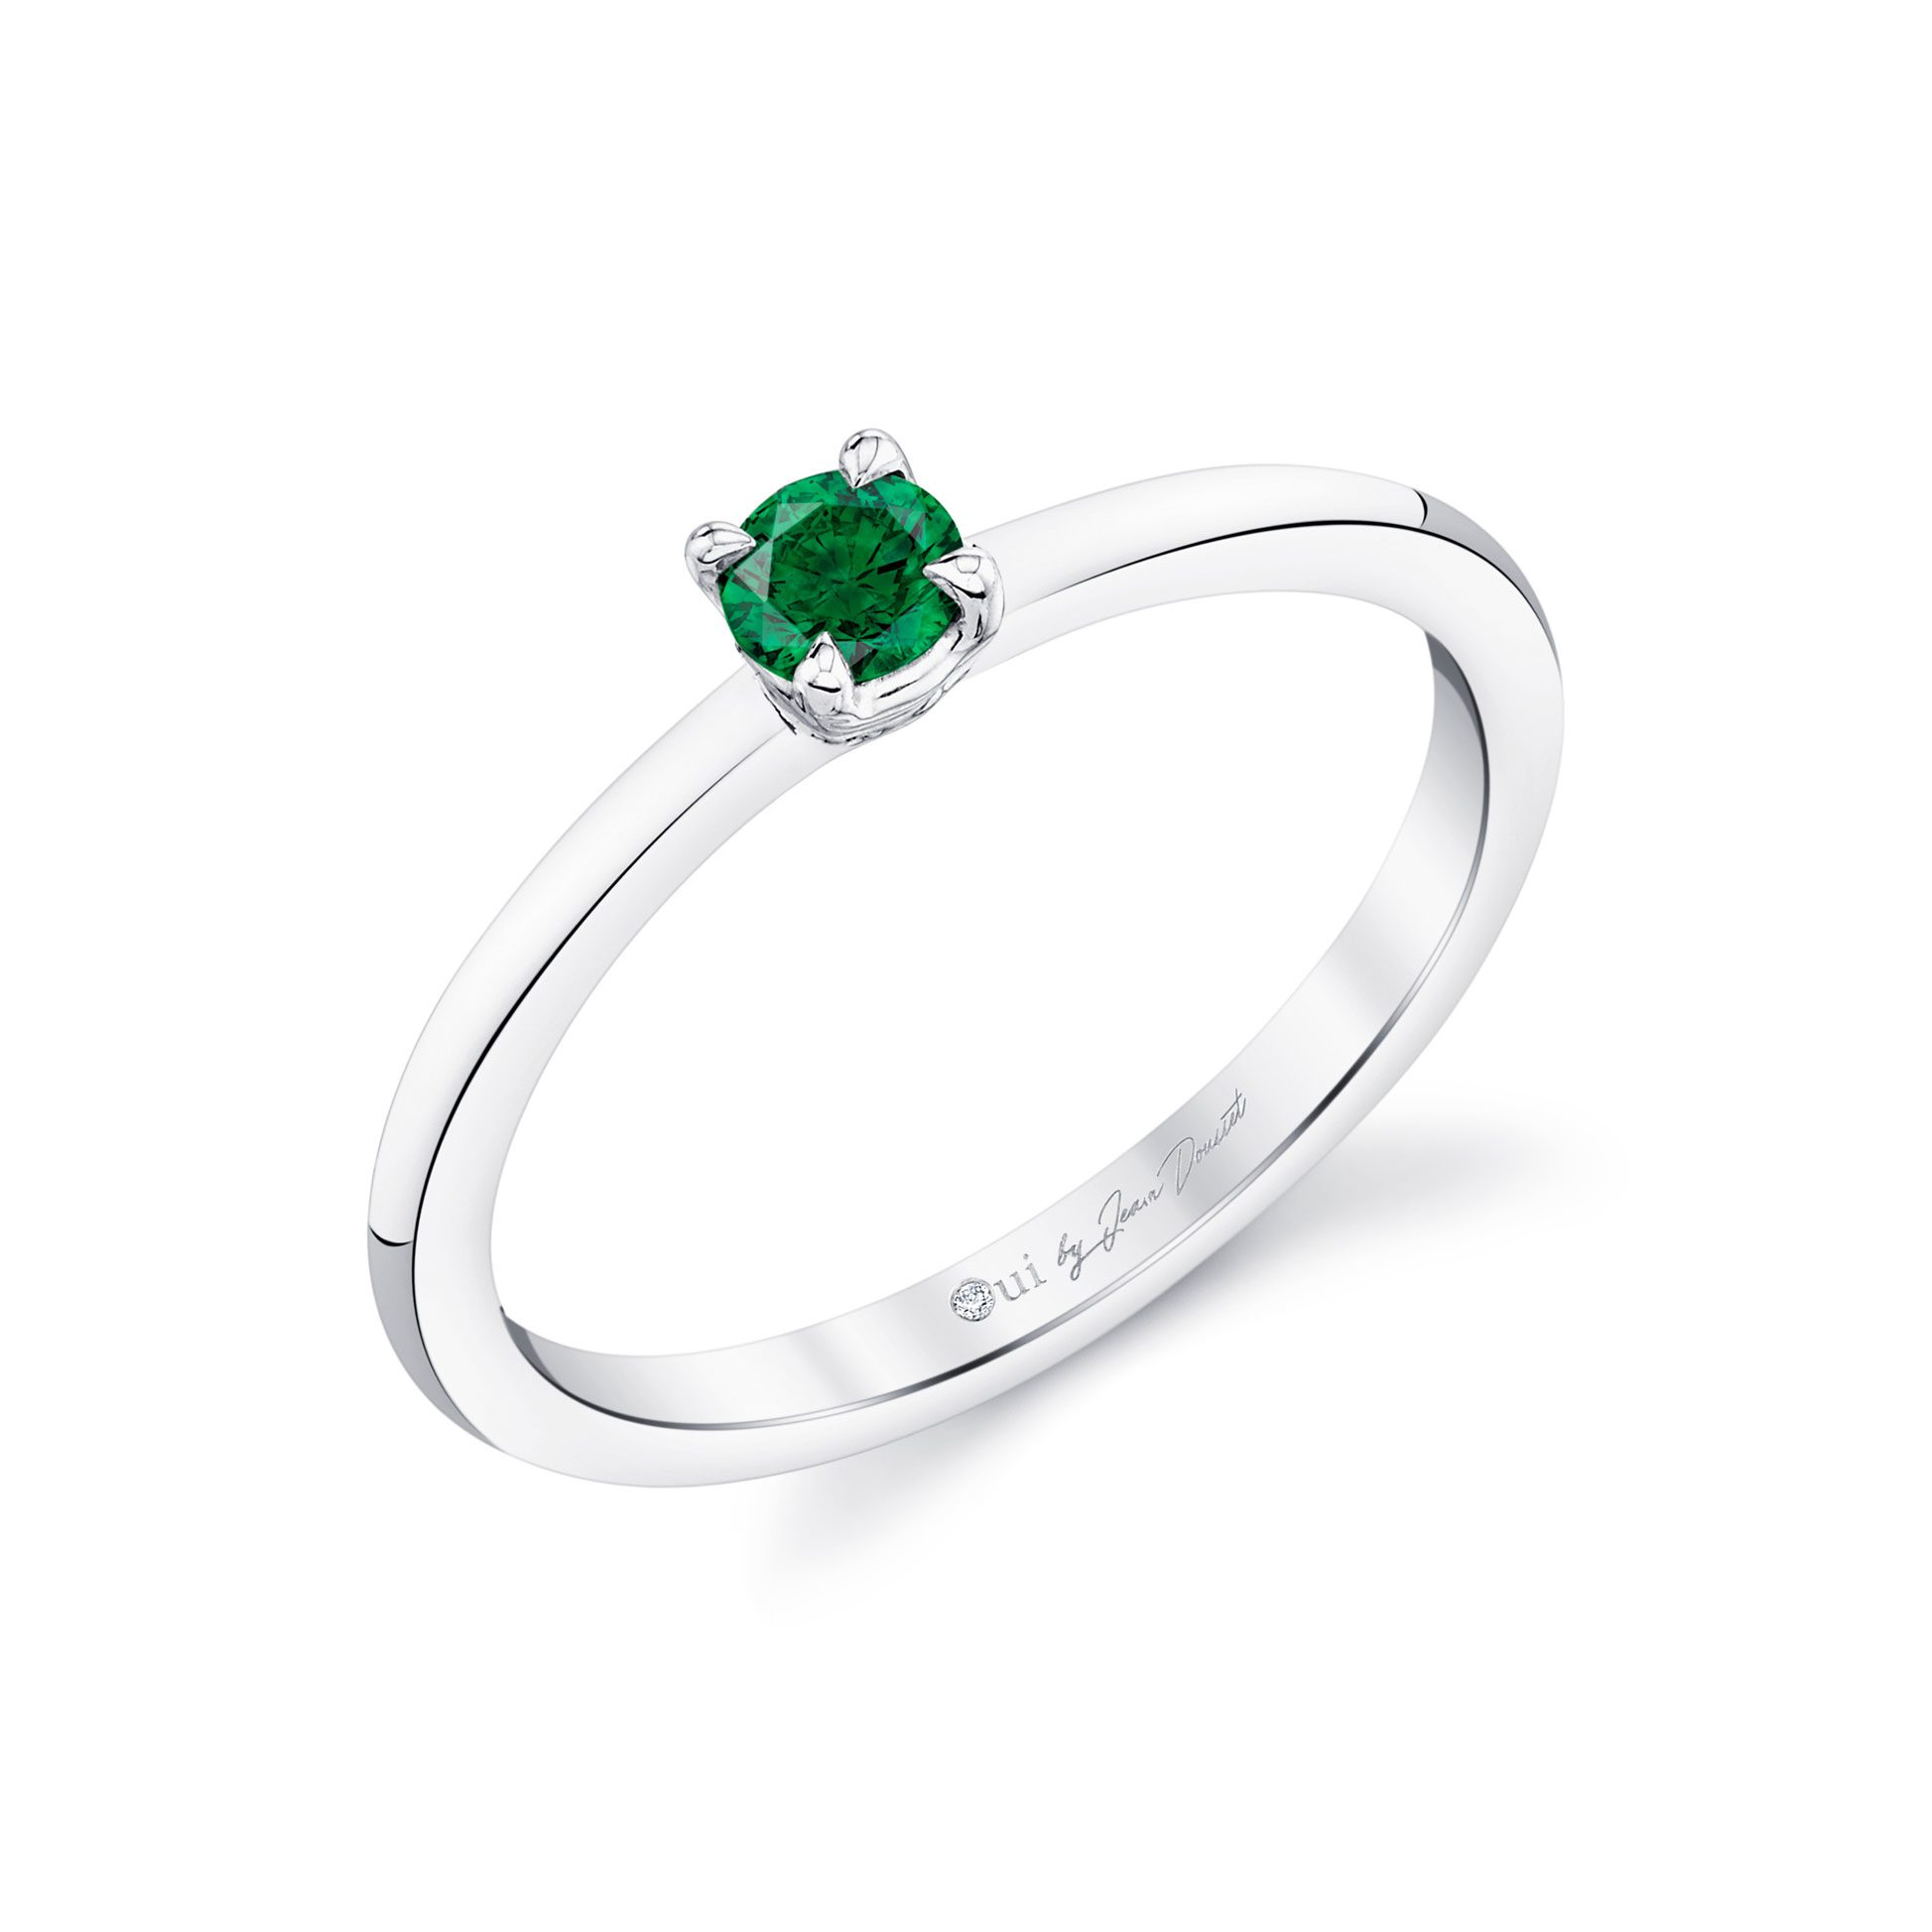 La Petite Round Brilliant Emerald Ring in 18k White Gold Profile View by Oui by Jean Dousset